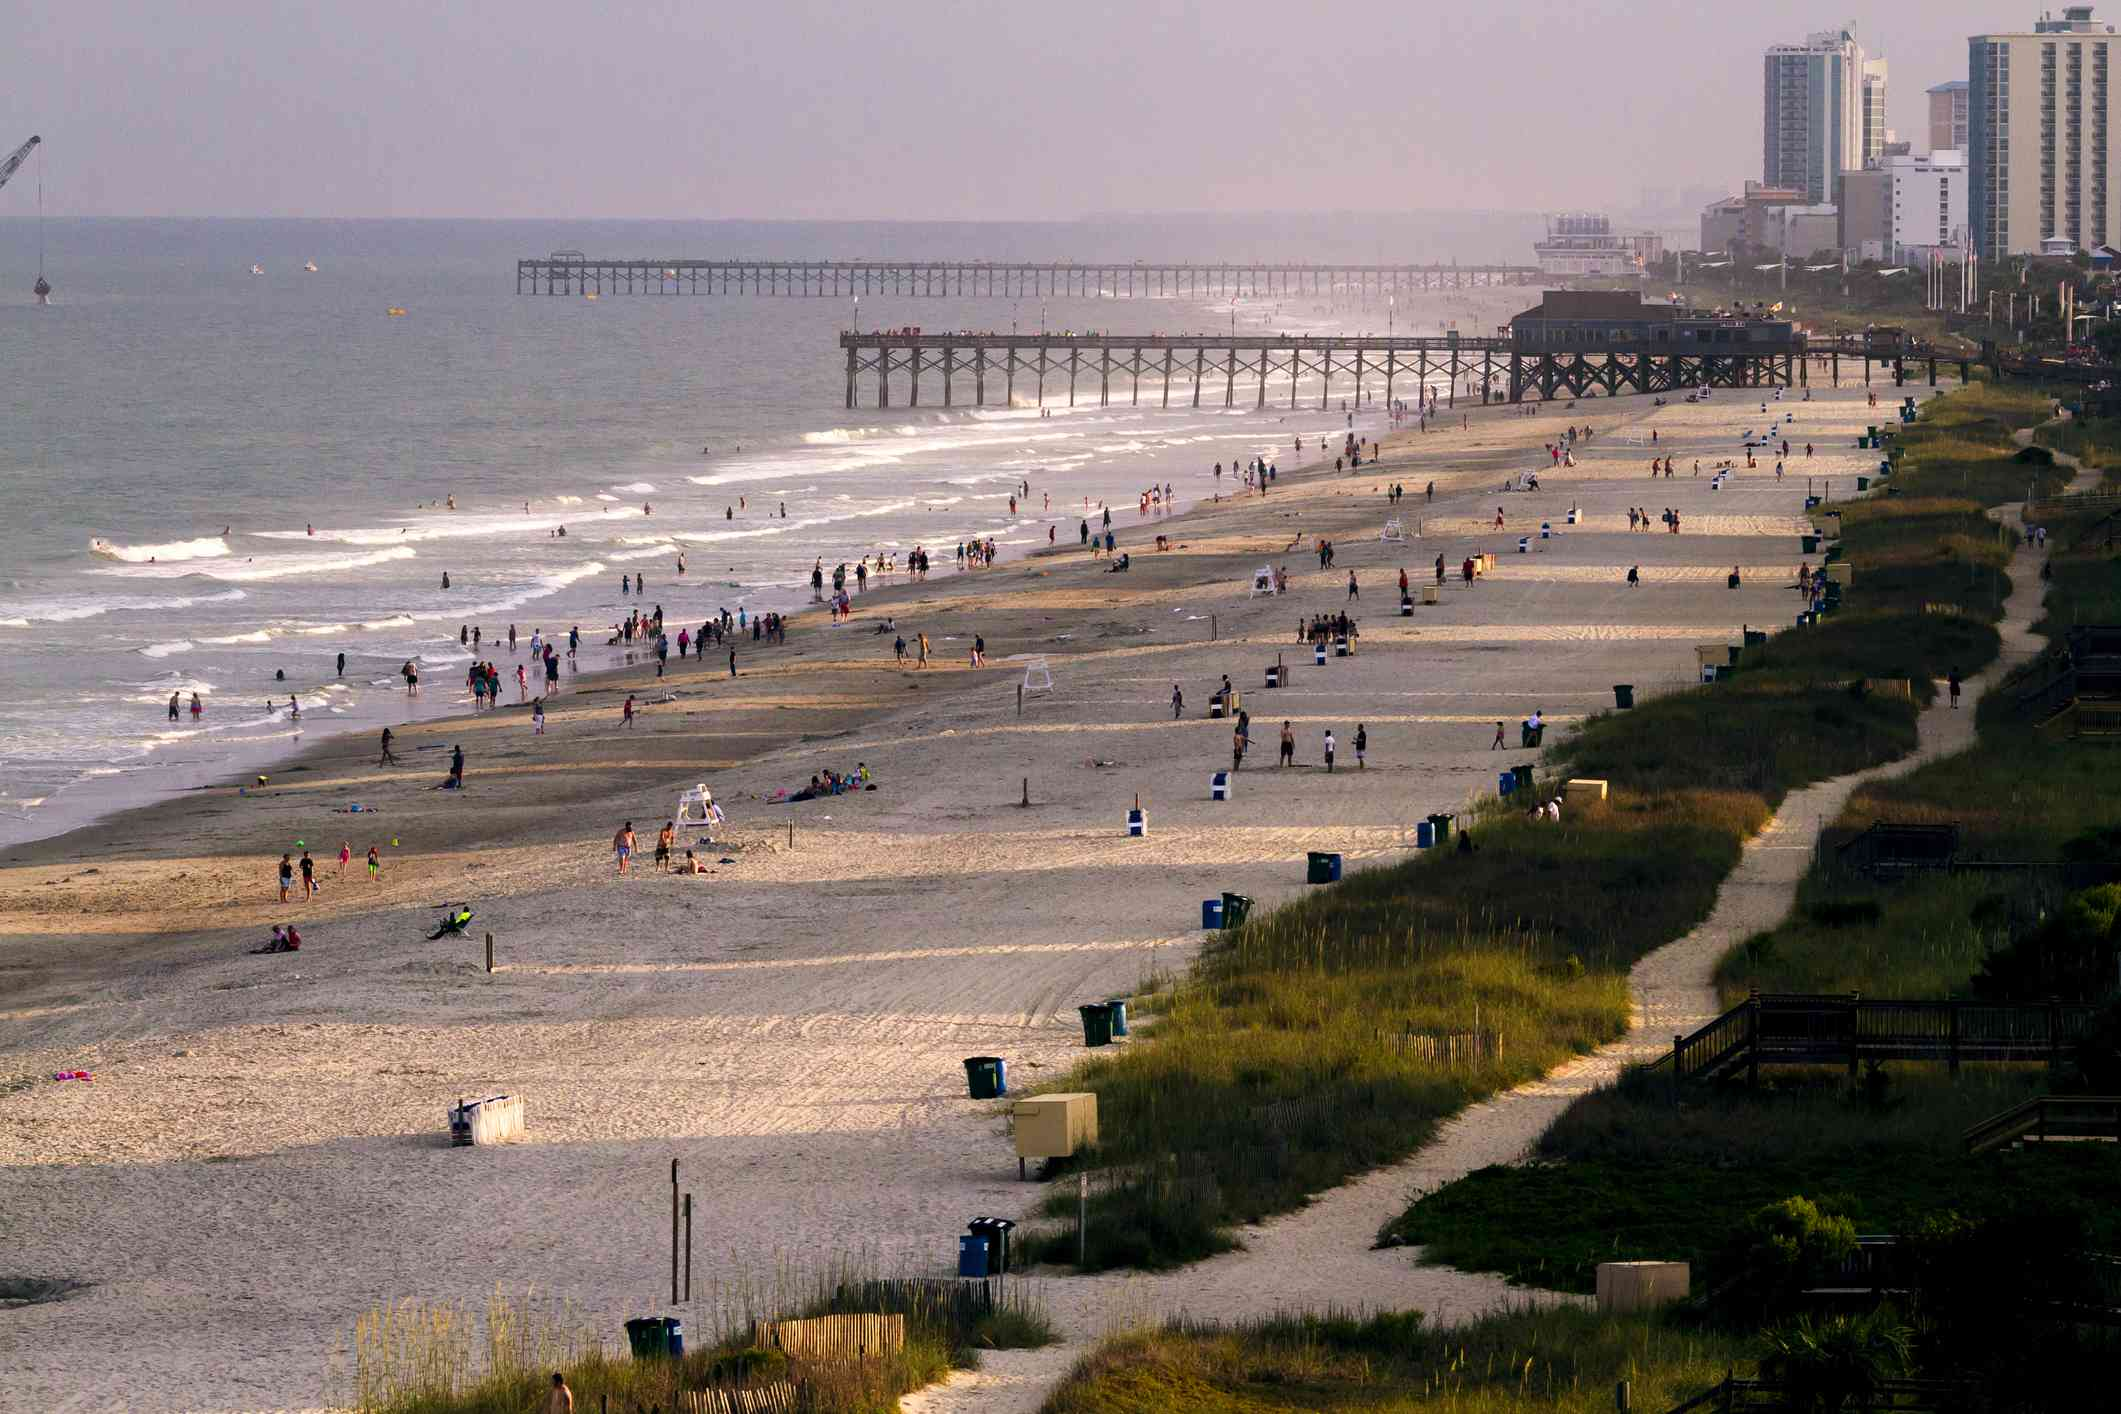 Busy Myrtle Beach with piers and buildings in background